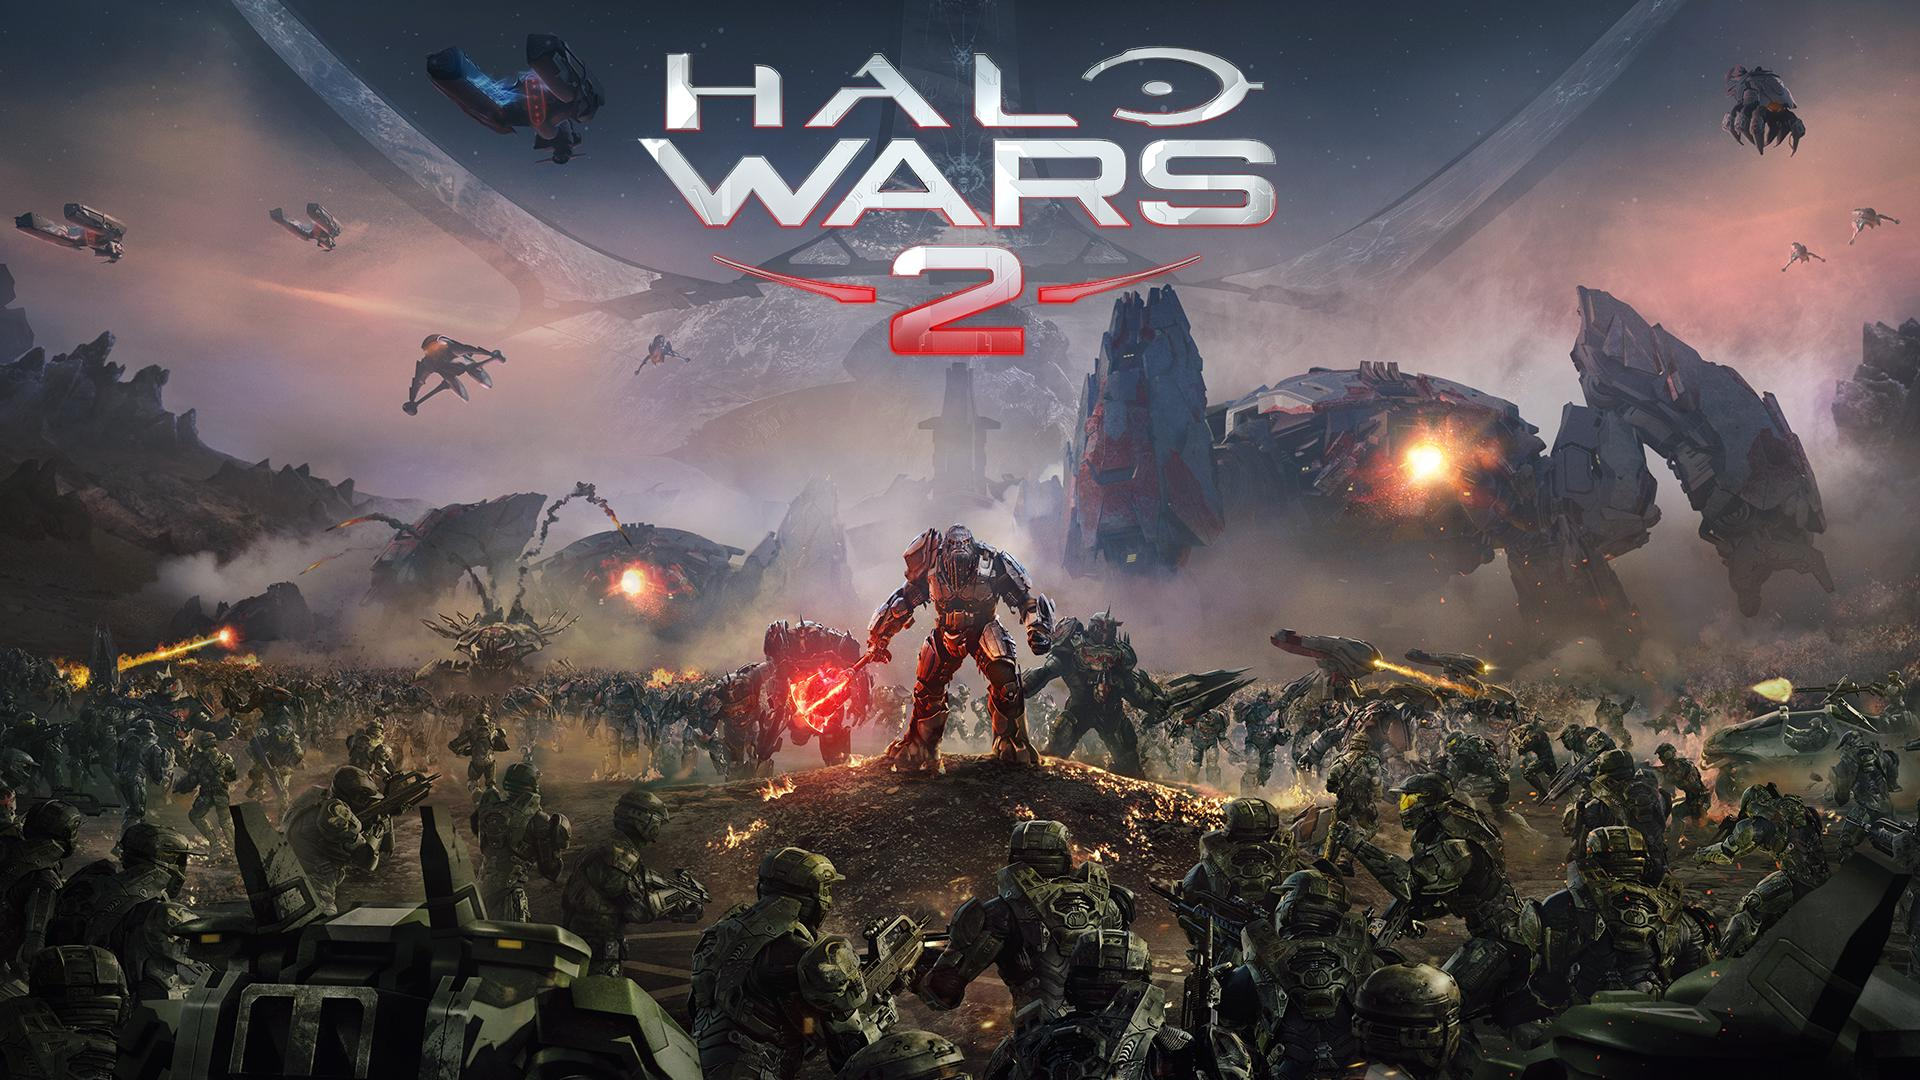 'Halo Wars 2': Release Date, Price, Gameplay And Trailers ...